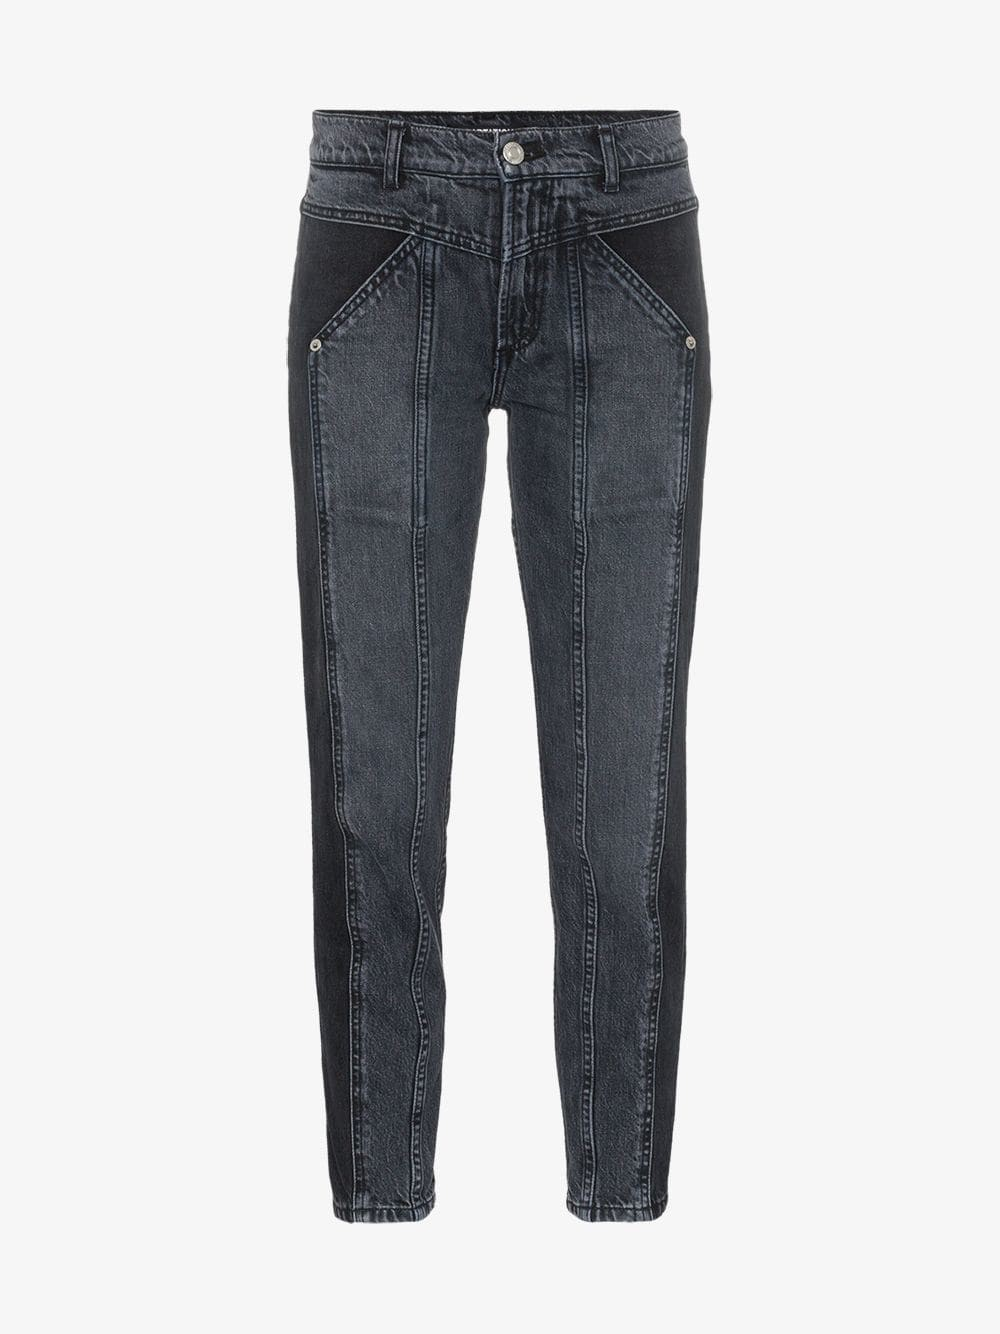 Adaptation Rider two-tone skinny jeans in black